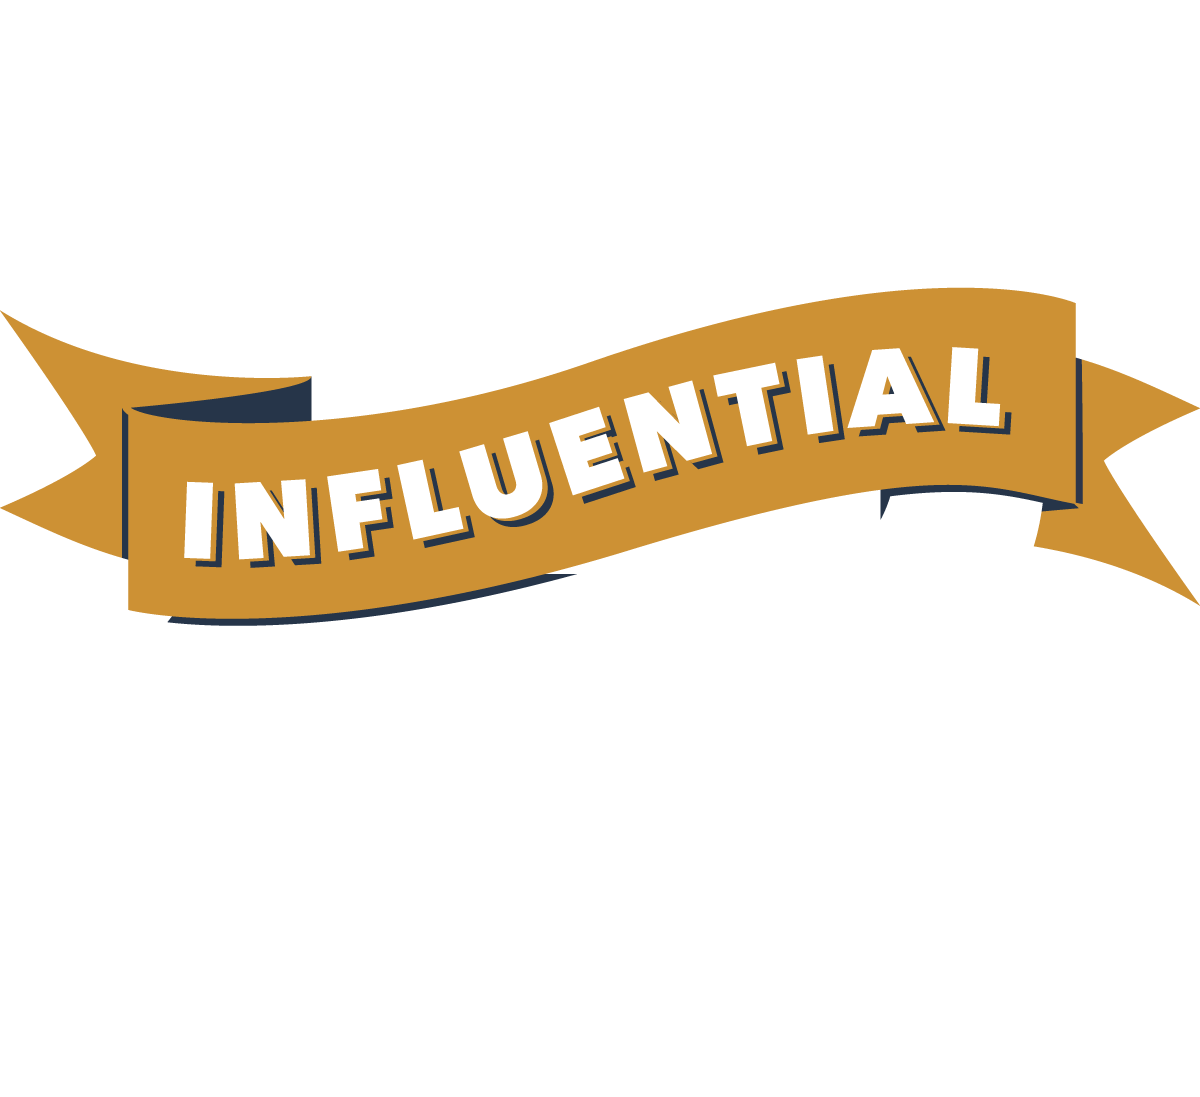 """The logo for the 2021 Women in Energy Virtual Conference stating """"25 Influential Women in Energy"""""""